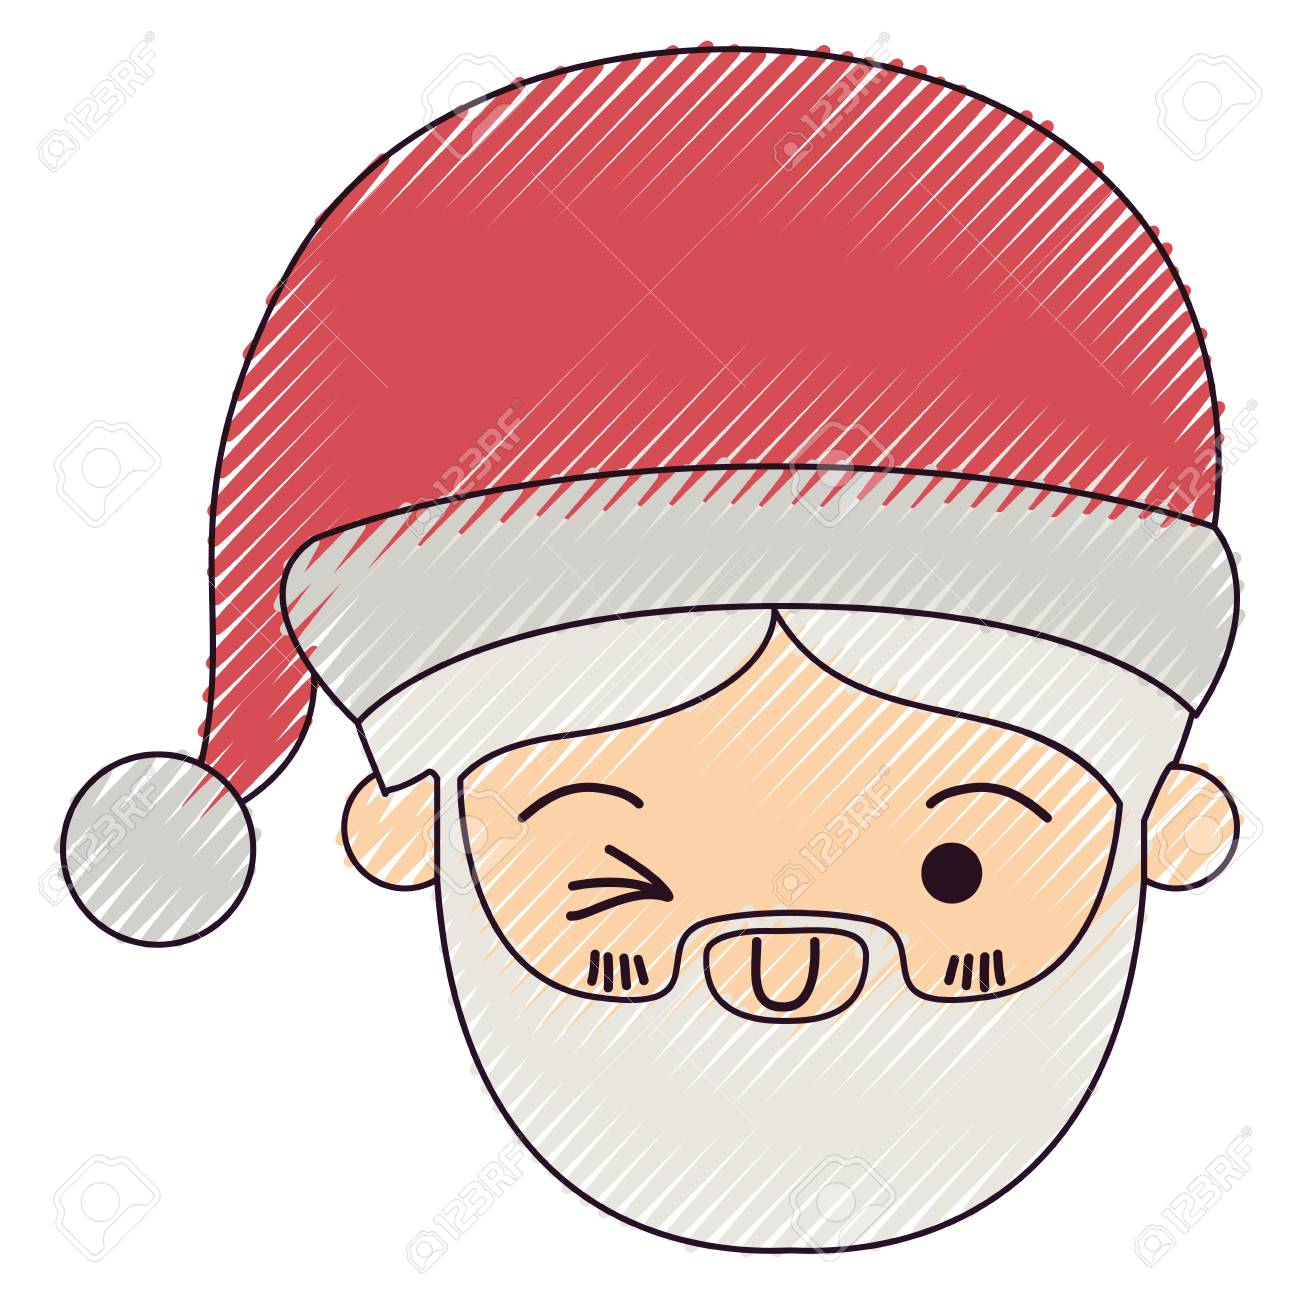 Santa Claus Kawaii Face Wink Eye And Smiling Expression With Royalty Free Cliparts Vectors And Stock Illustration Image 87481418